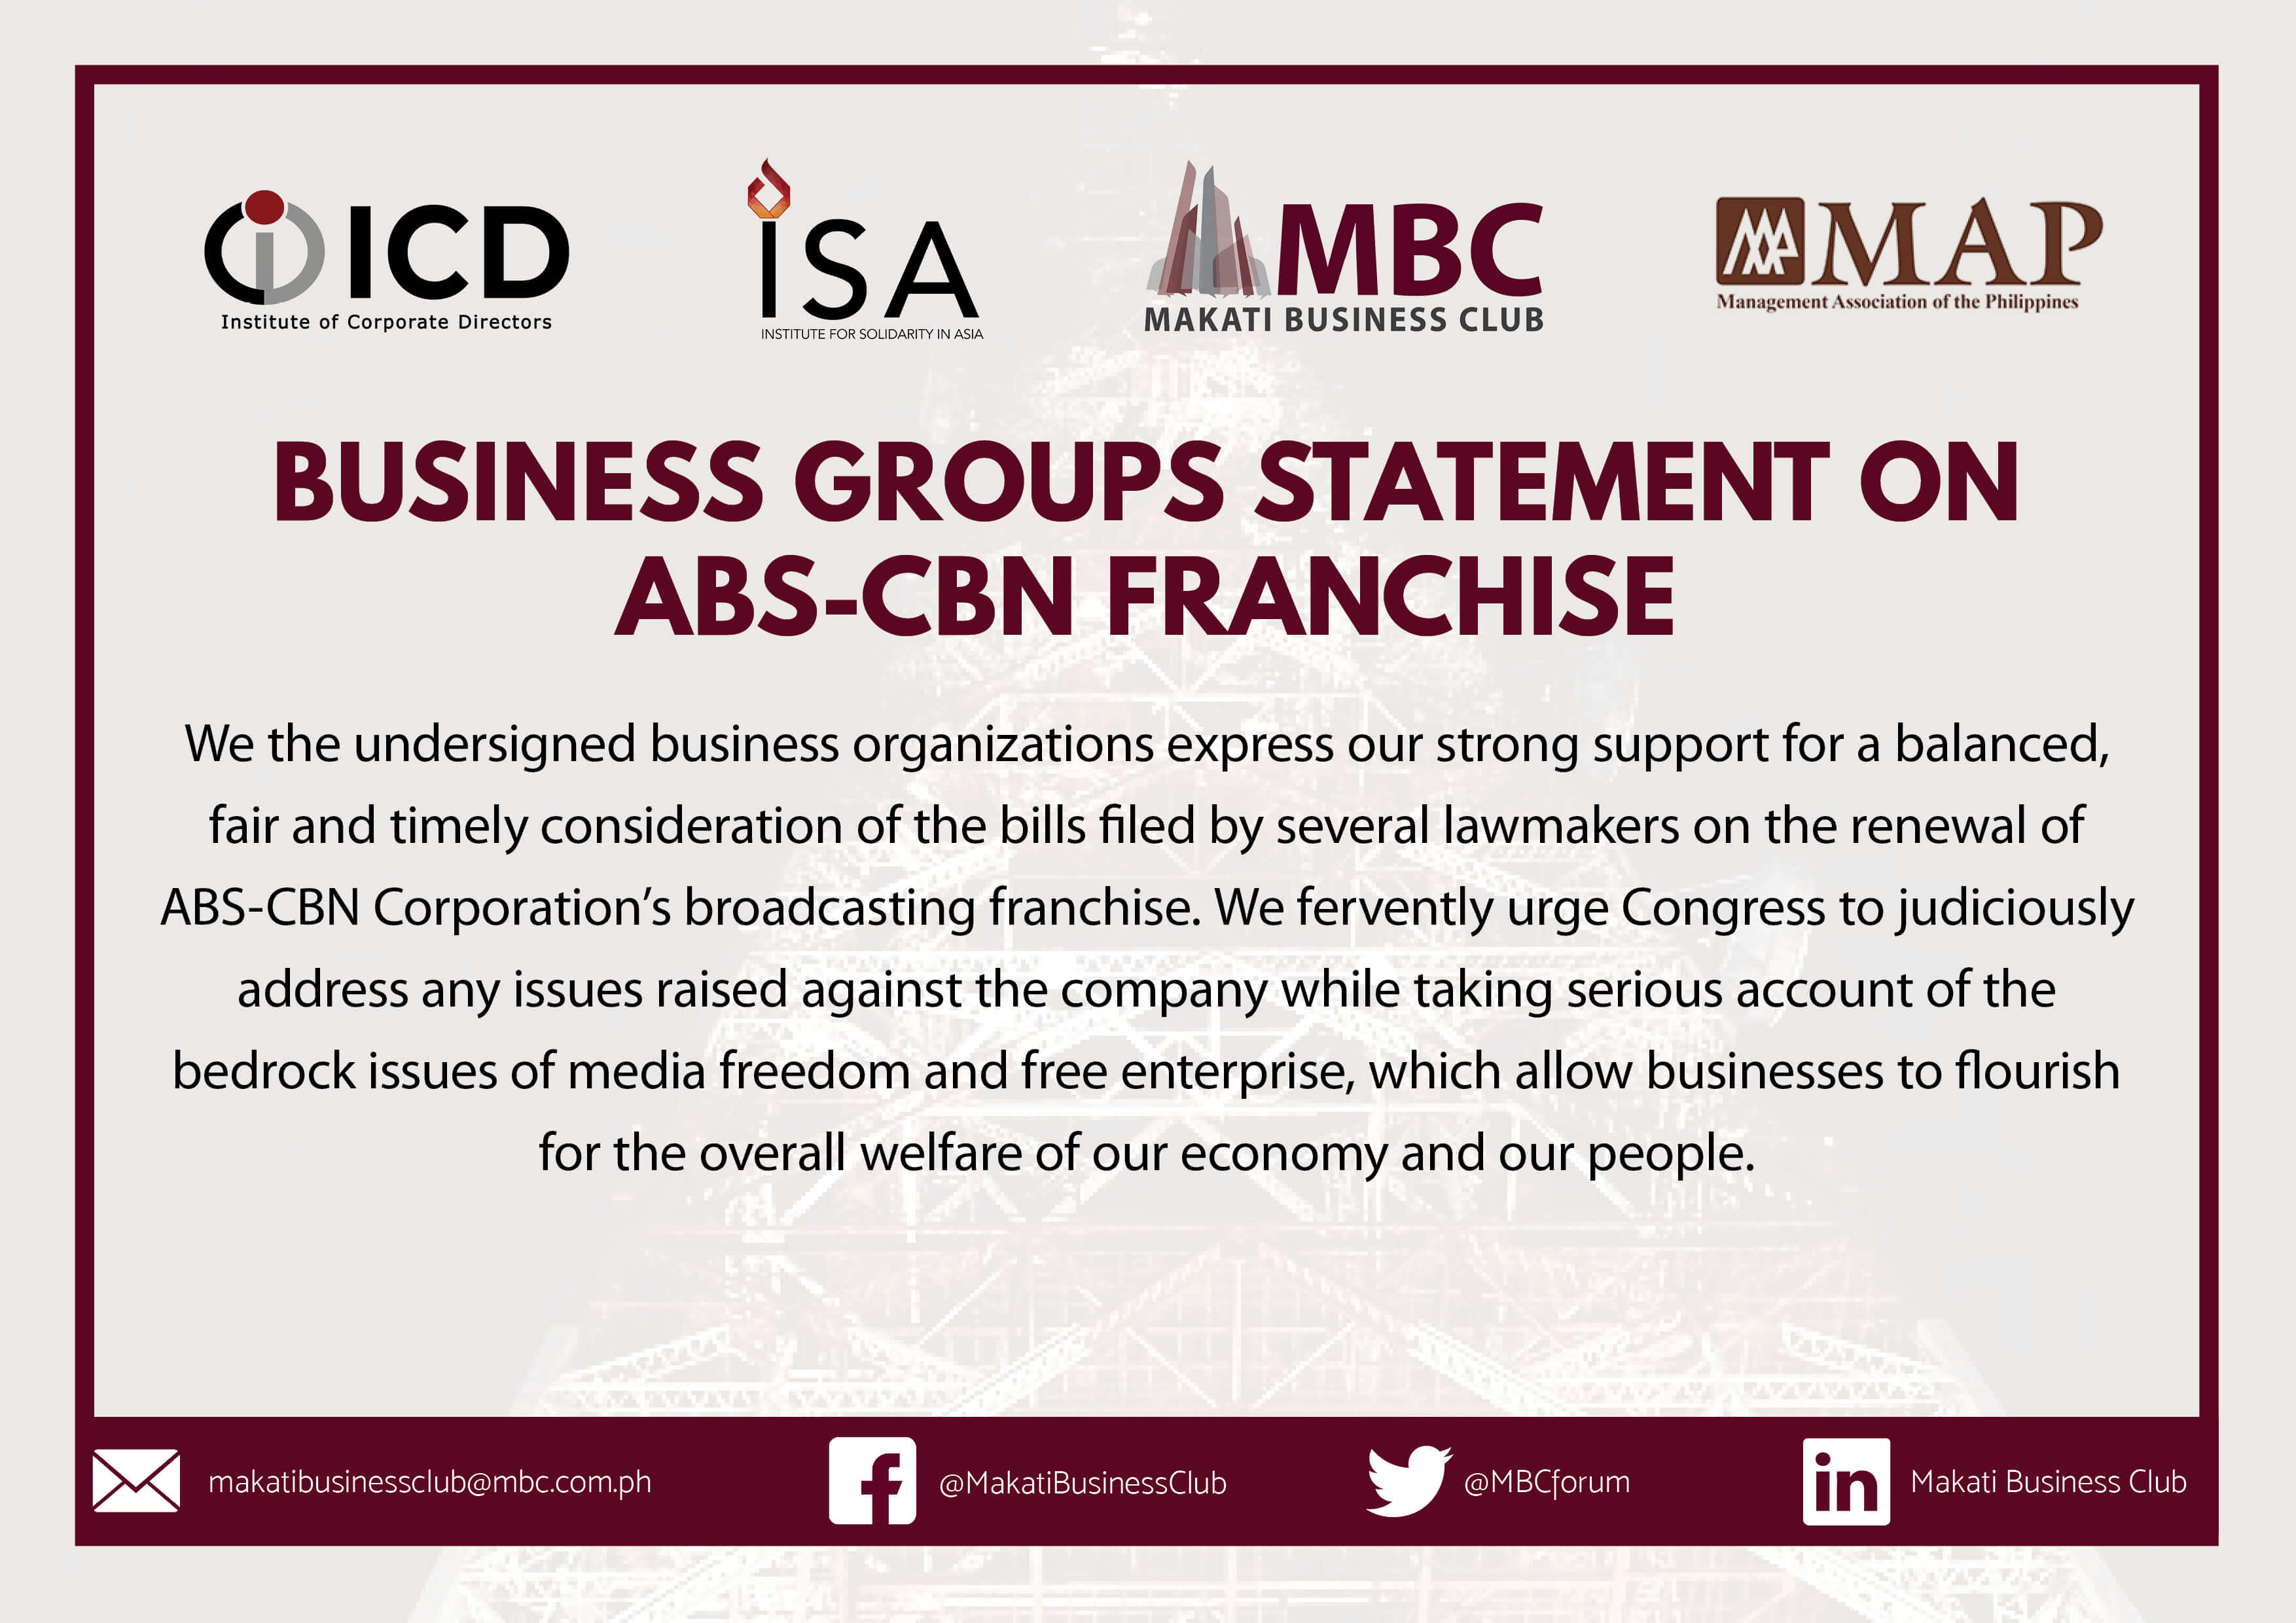 Business Groups Statement on the ABS-CBN Franchise